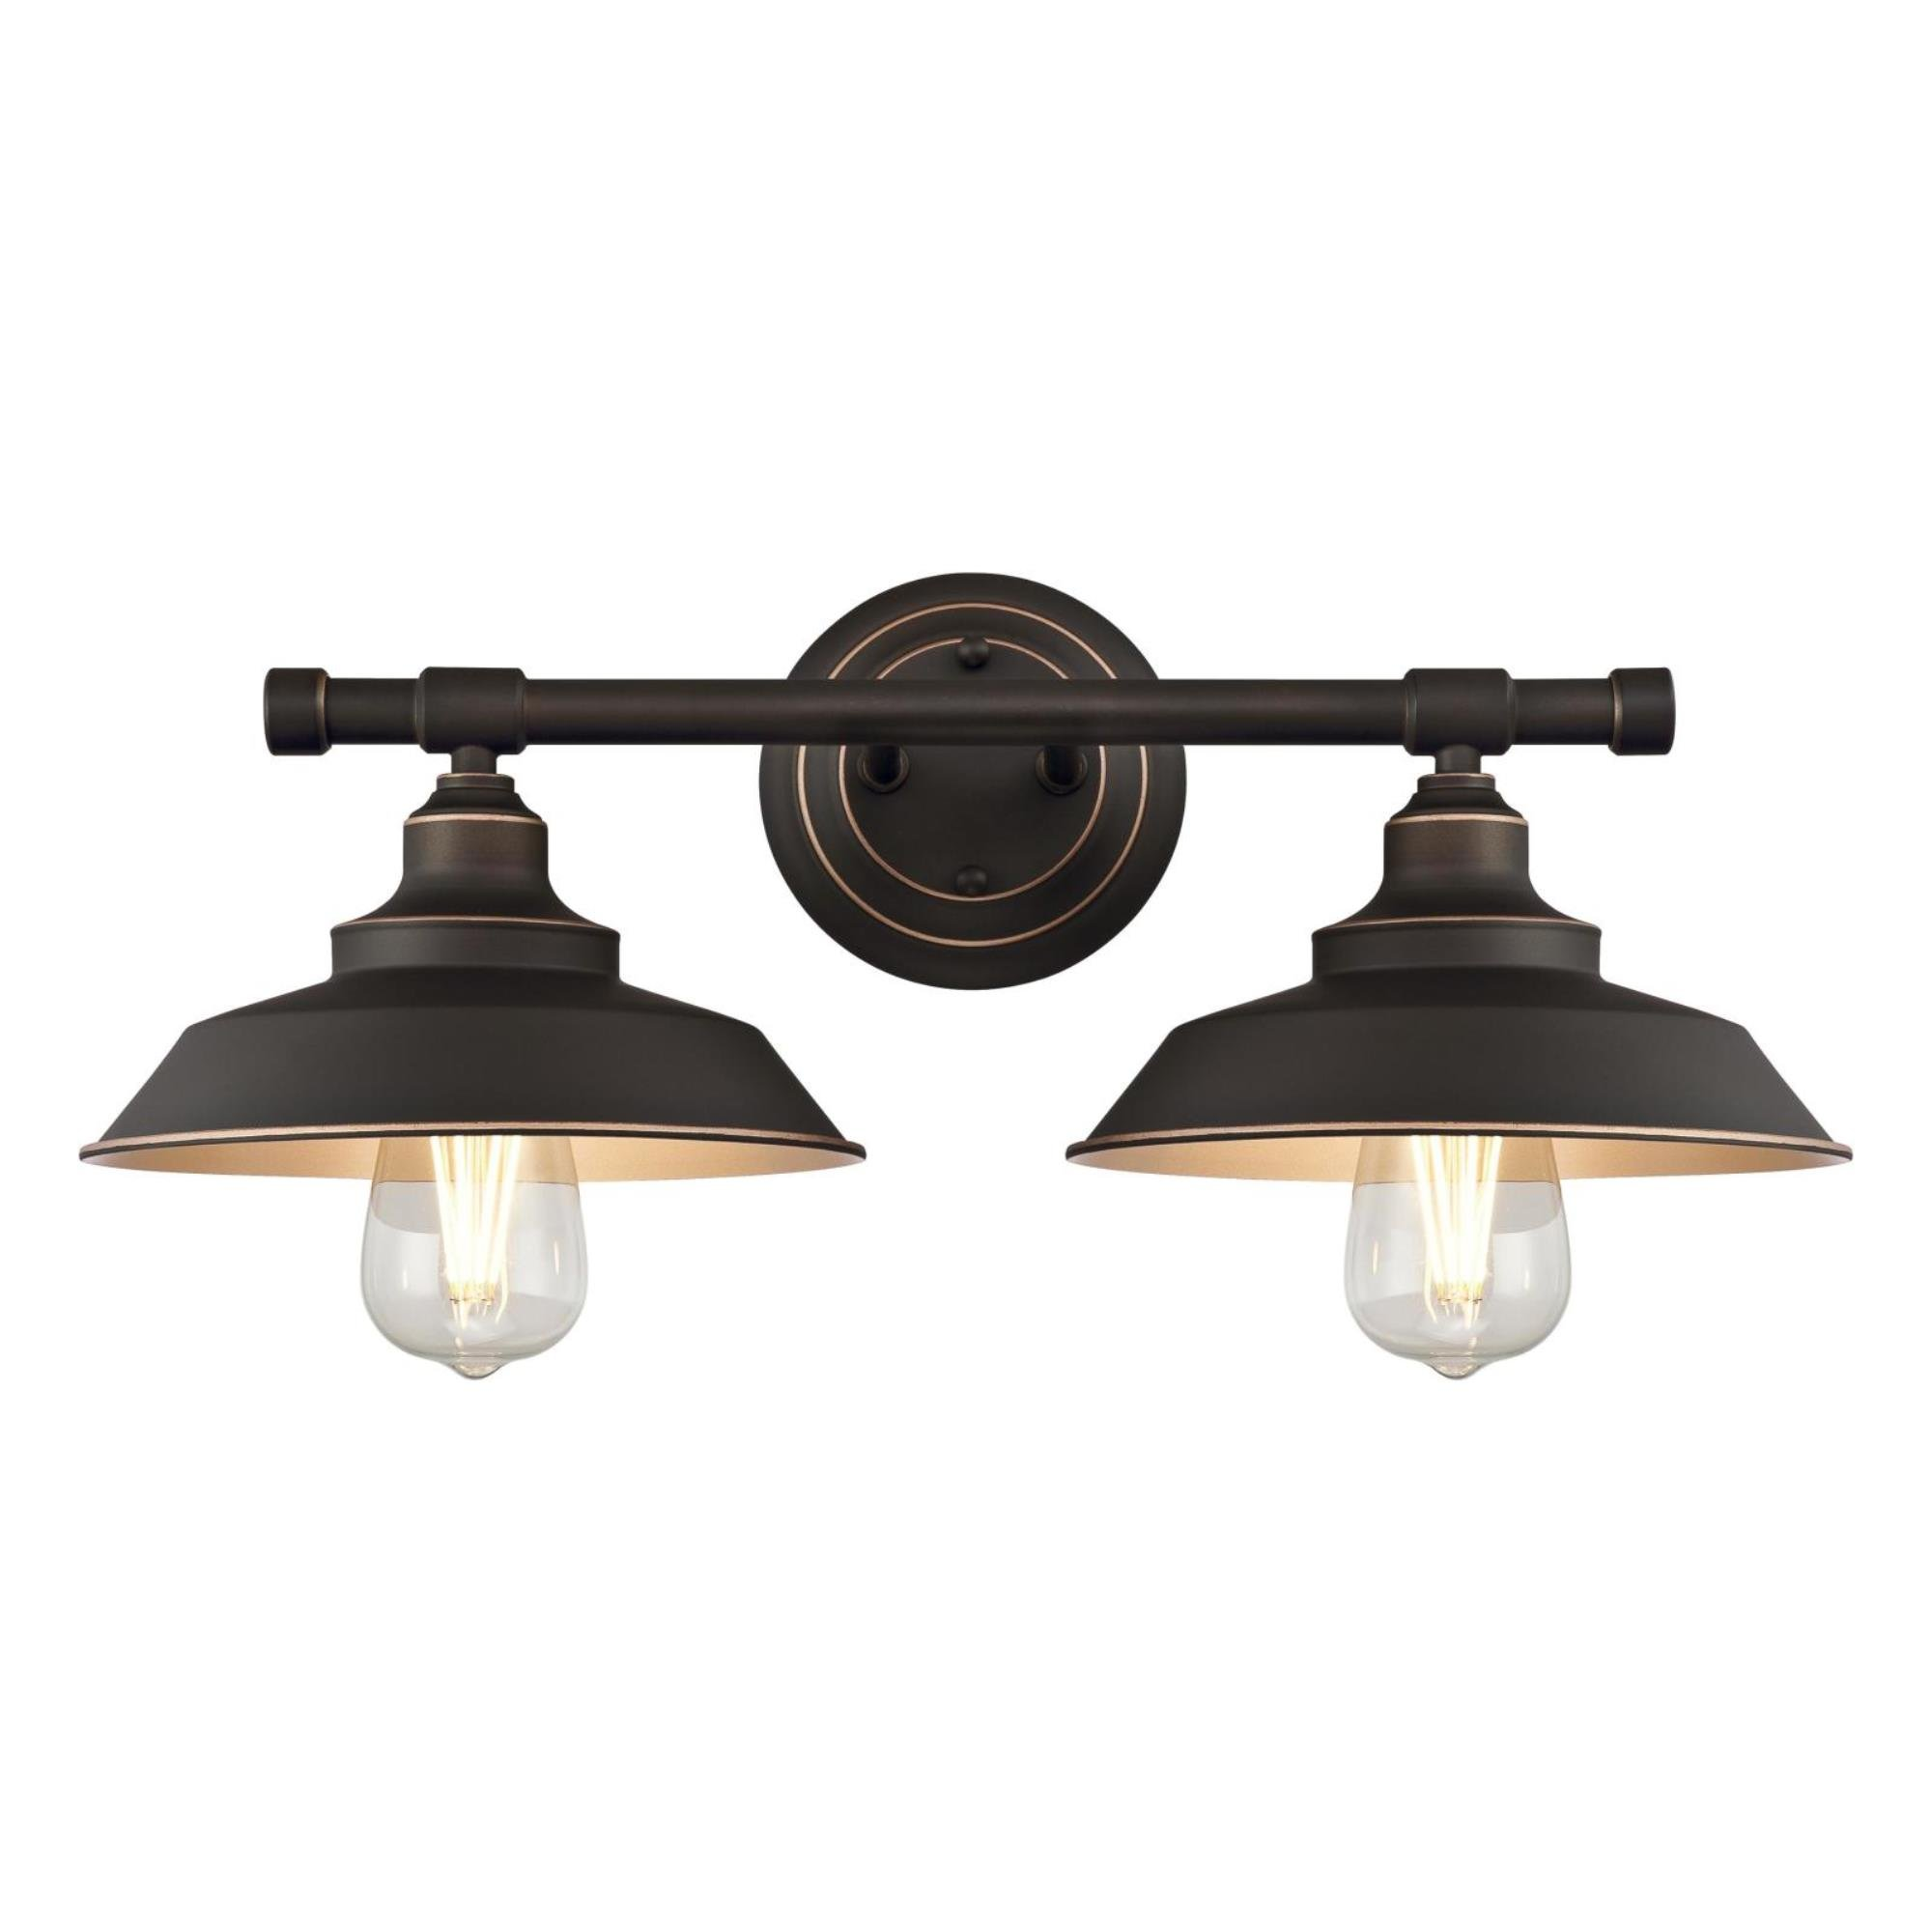 Westinghouse 6354800 Iron Hill Two-Light Indoor Wall Fixture, Oil Rubbed Bronze Finish with Highlights and Metal Shades